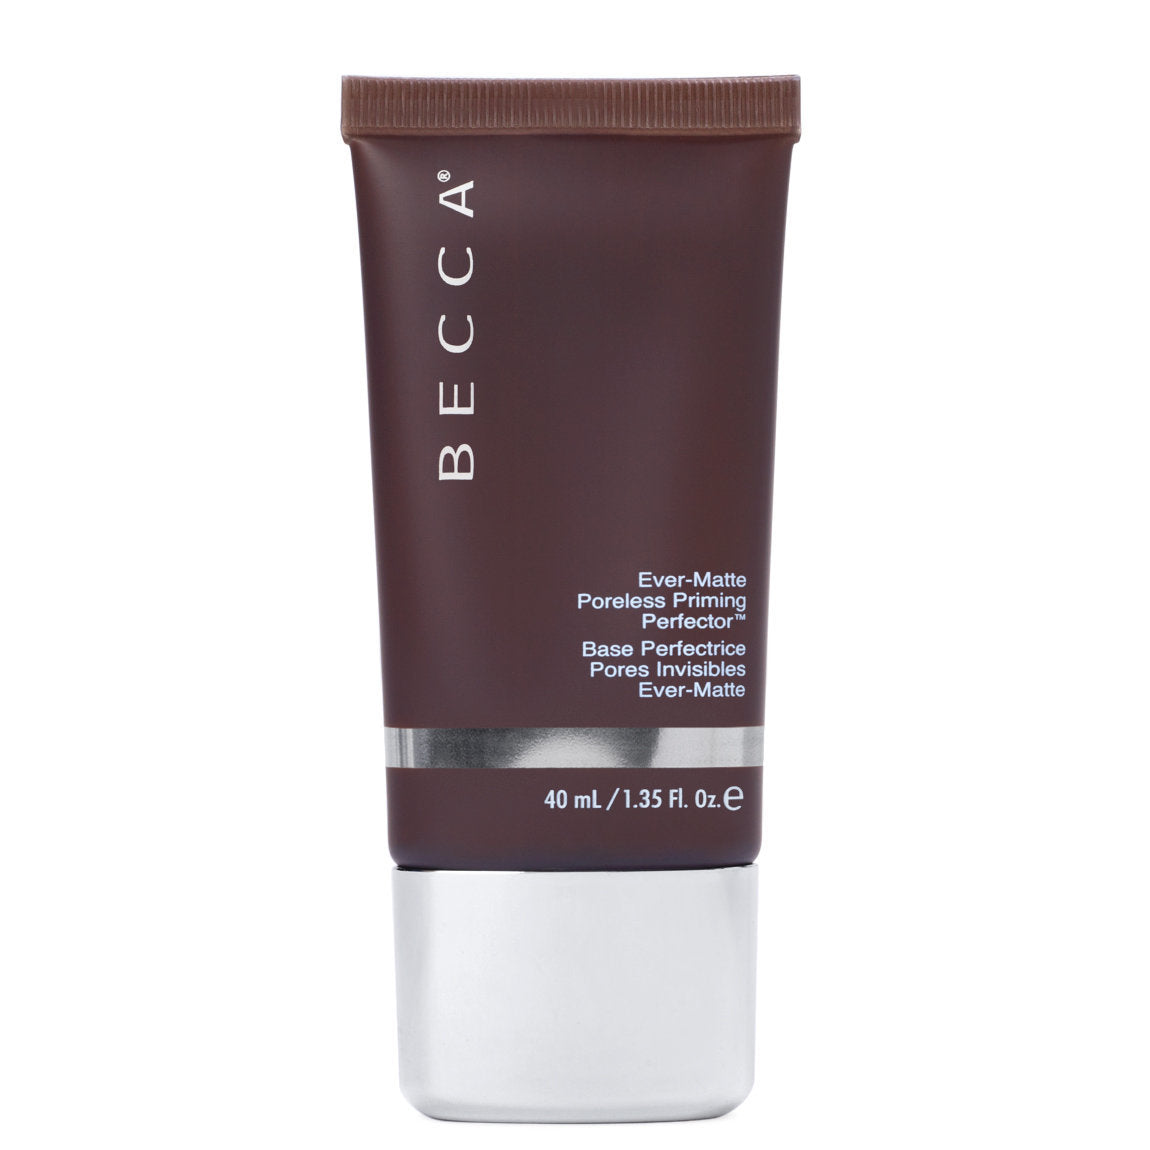 BECCA Ever-Matte Poreless Priming Perfector